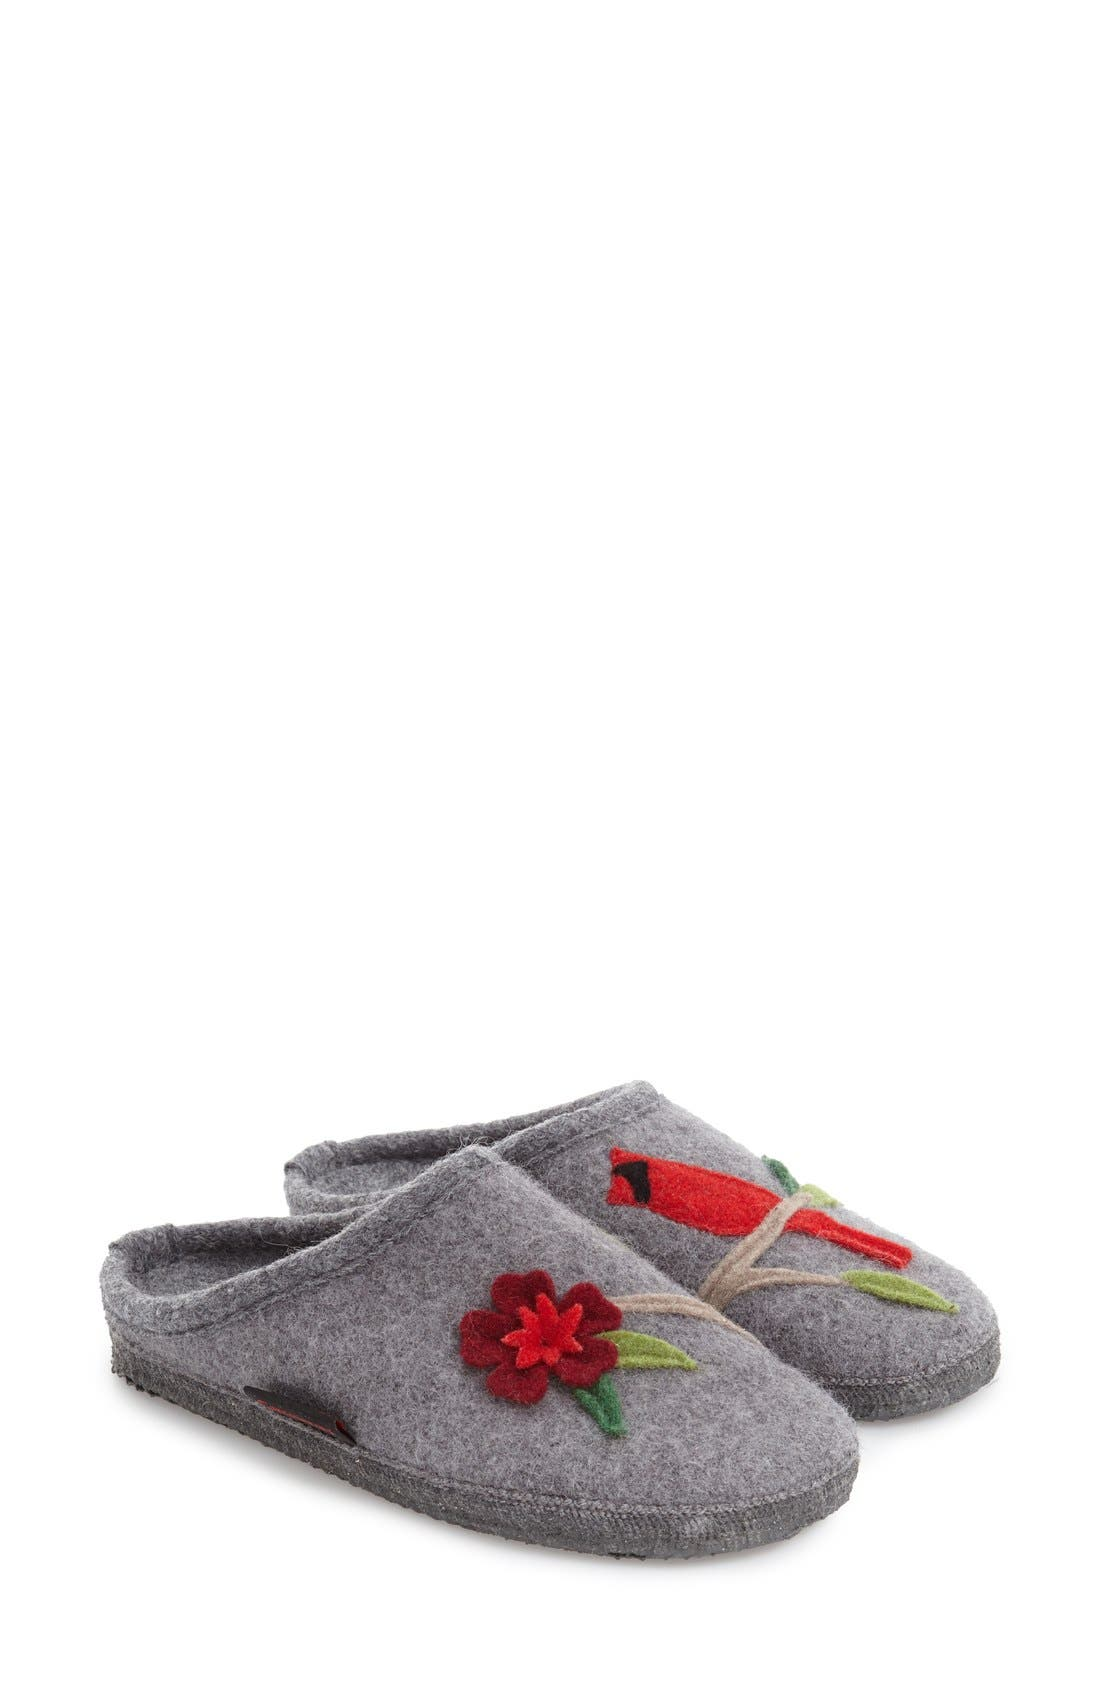 'Angela' Wool Slipper,                             Main thumbnail 1, color,